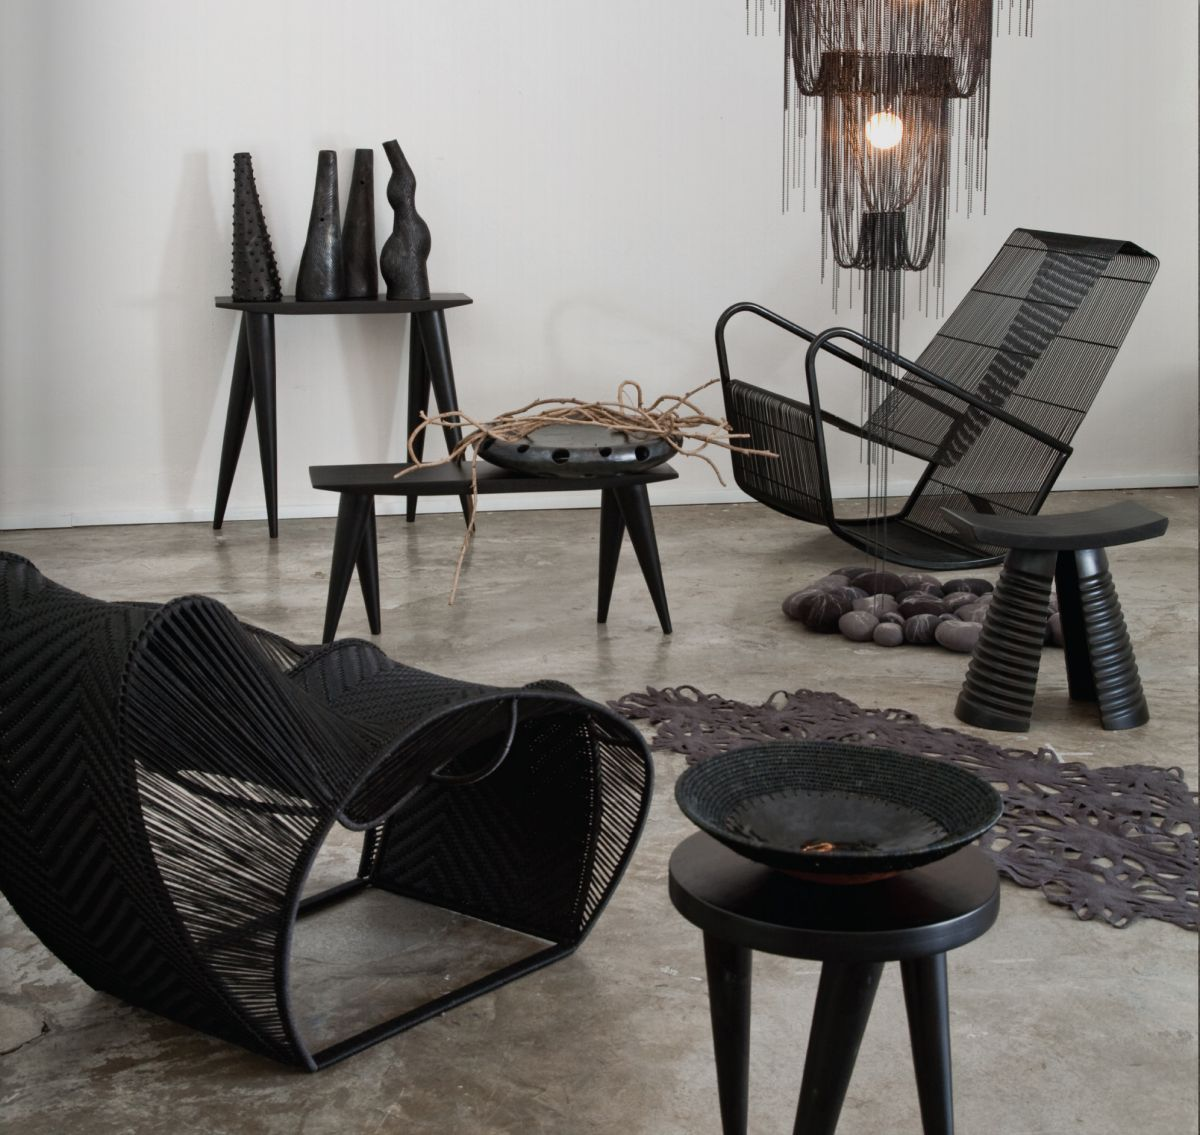 contemporary african furniture. 6 Opportunities To Consider In 2015: Part II Contemporary African Furniture